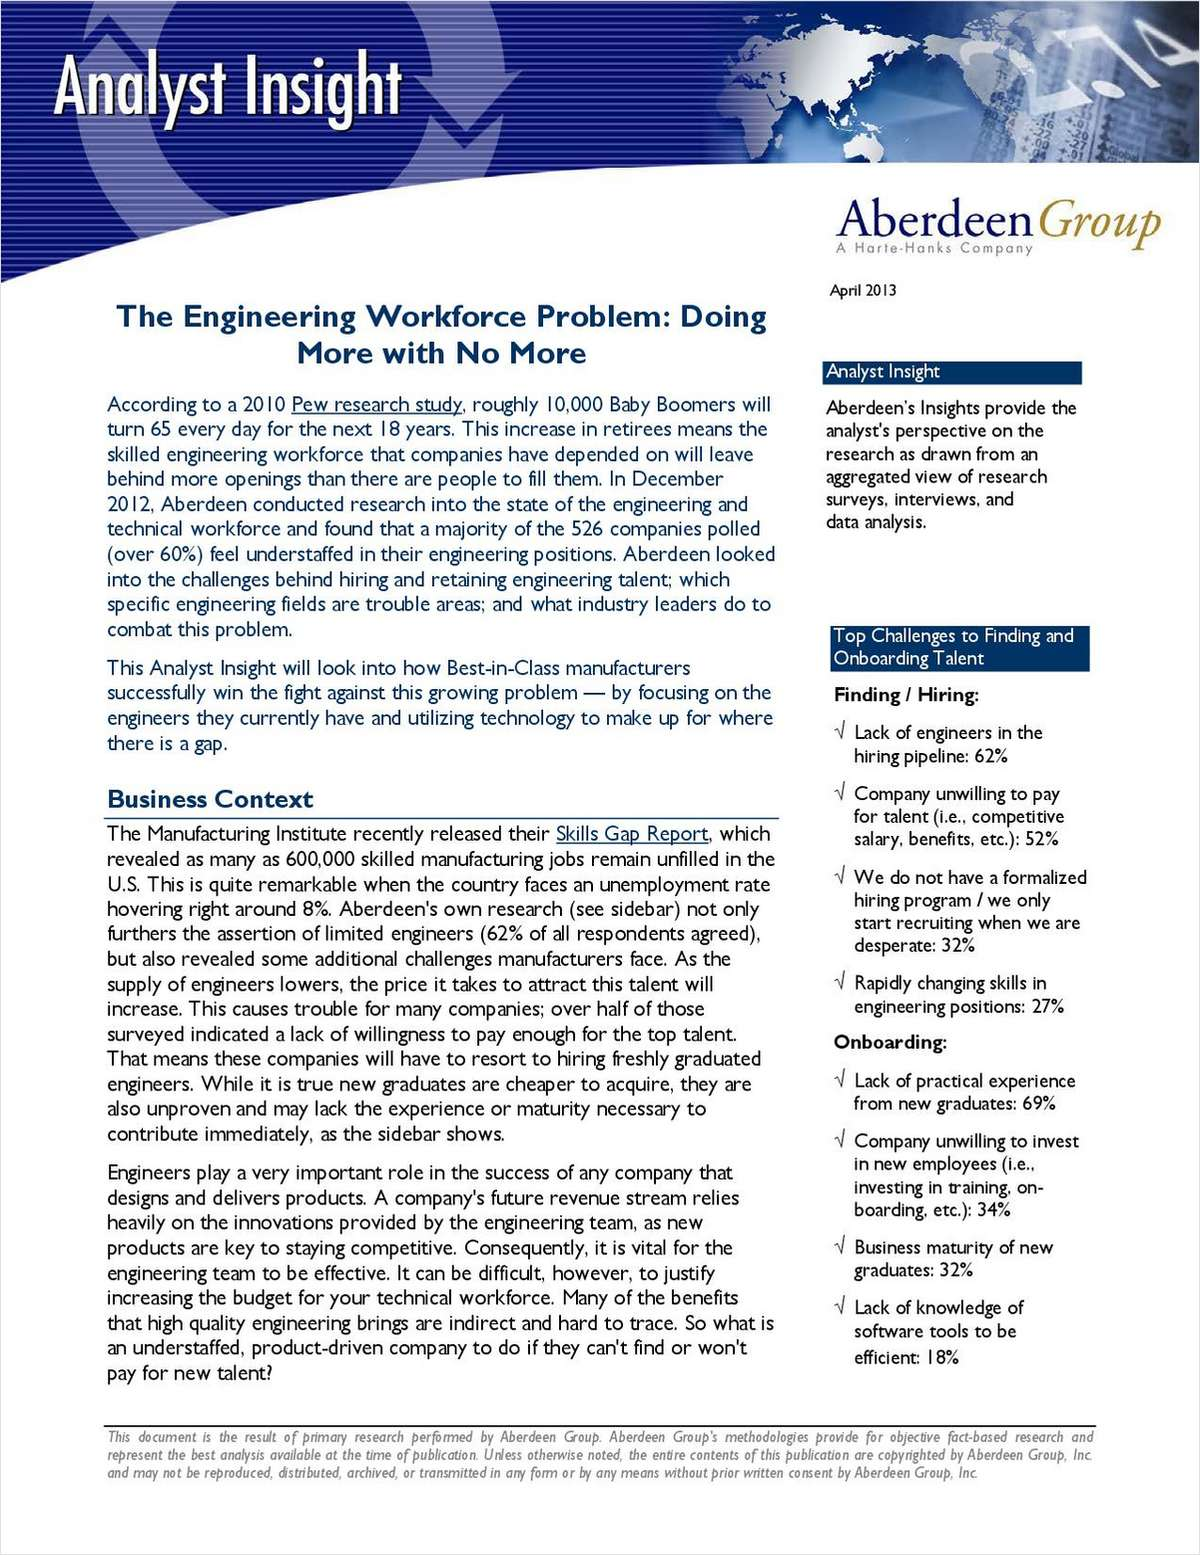 The Engineering Workforce Problem: Doing More with No More